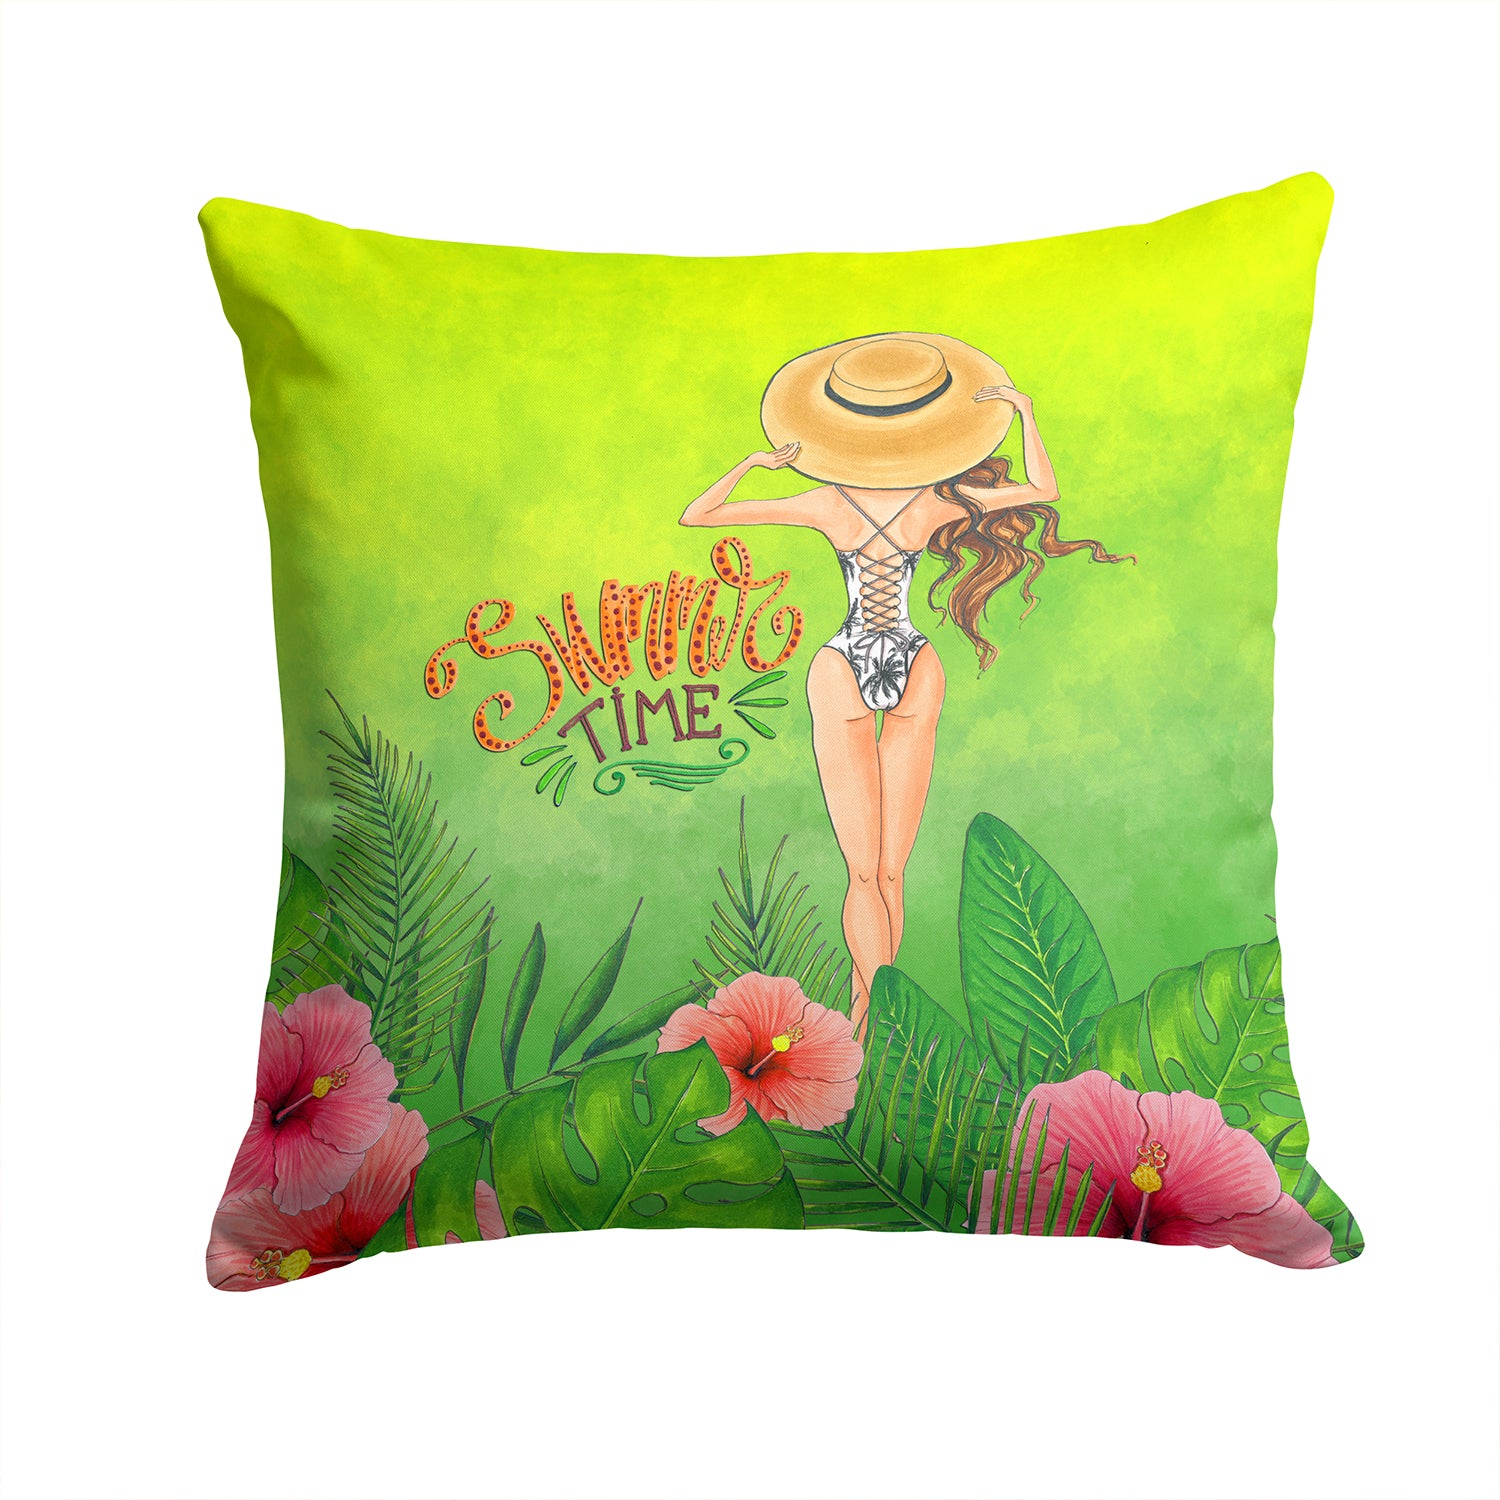 Summer Time Lady in Swimsuit Fabric Decorative Pillow BB7455PW1414 by Caroline's Treasures